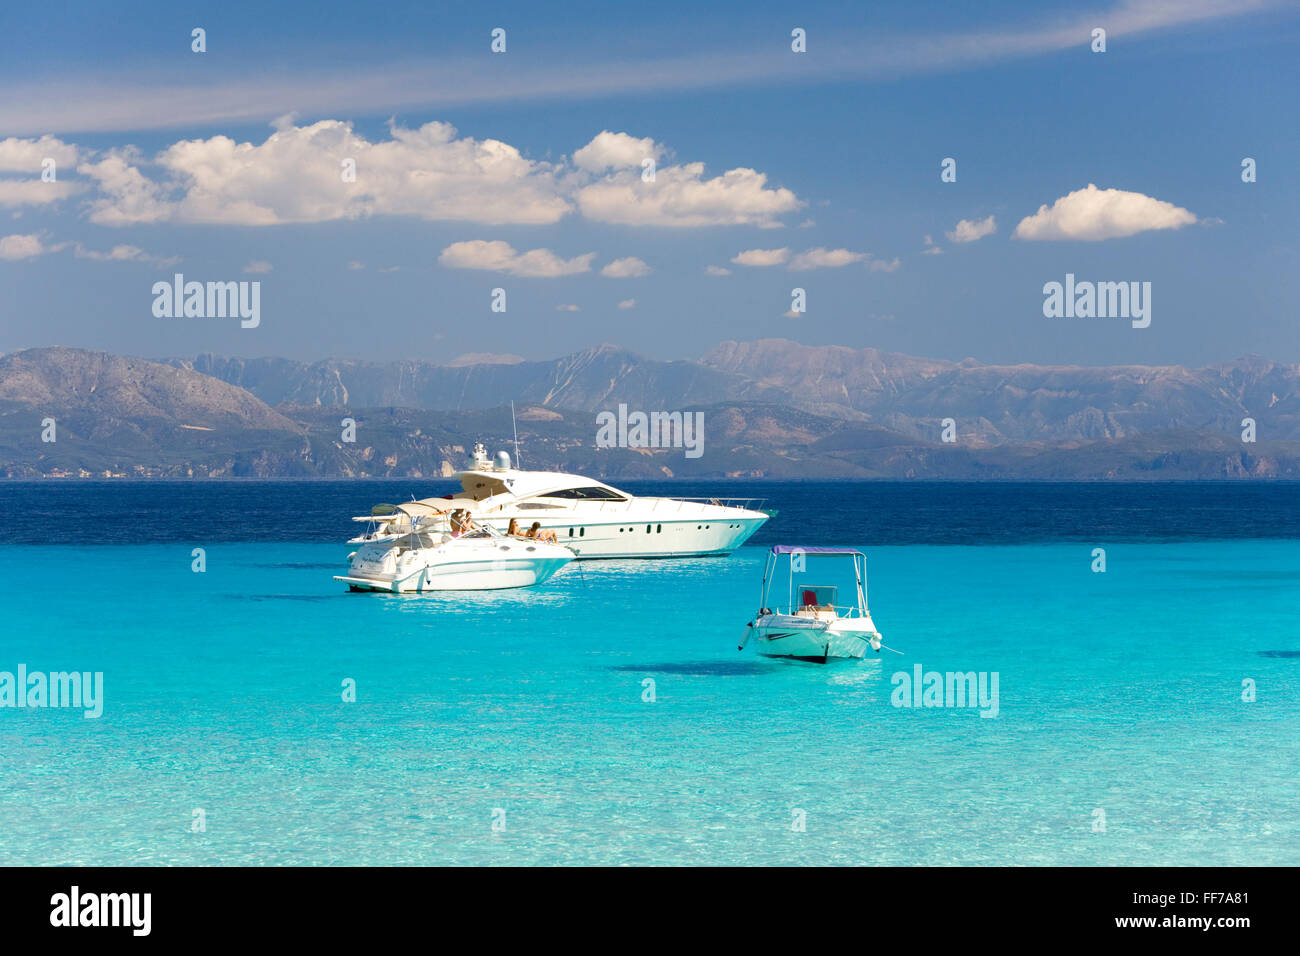 Antipaxos, Ionian Islands, Greece. View across the clear turquoise waters of Voutoumi Bay, boats at anchor. - Stock Image